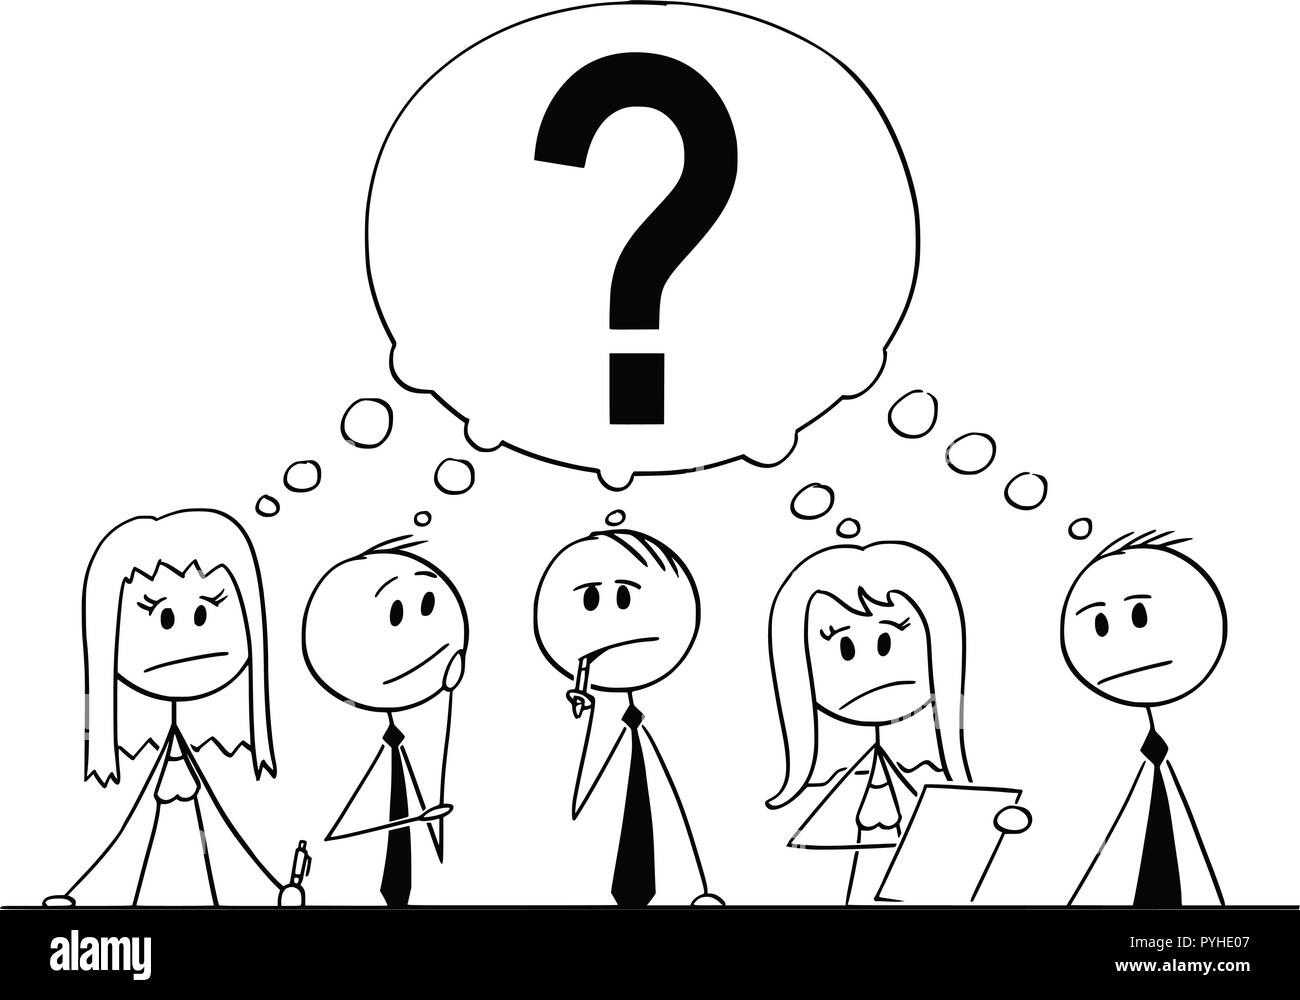 Cartoon of Group of Business People Thinking With Question Mark Above - Stock Image